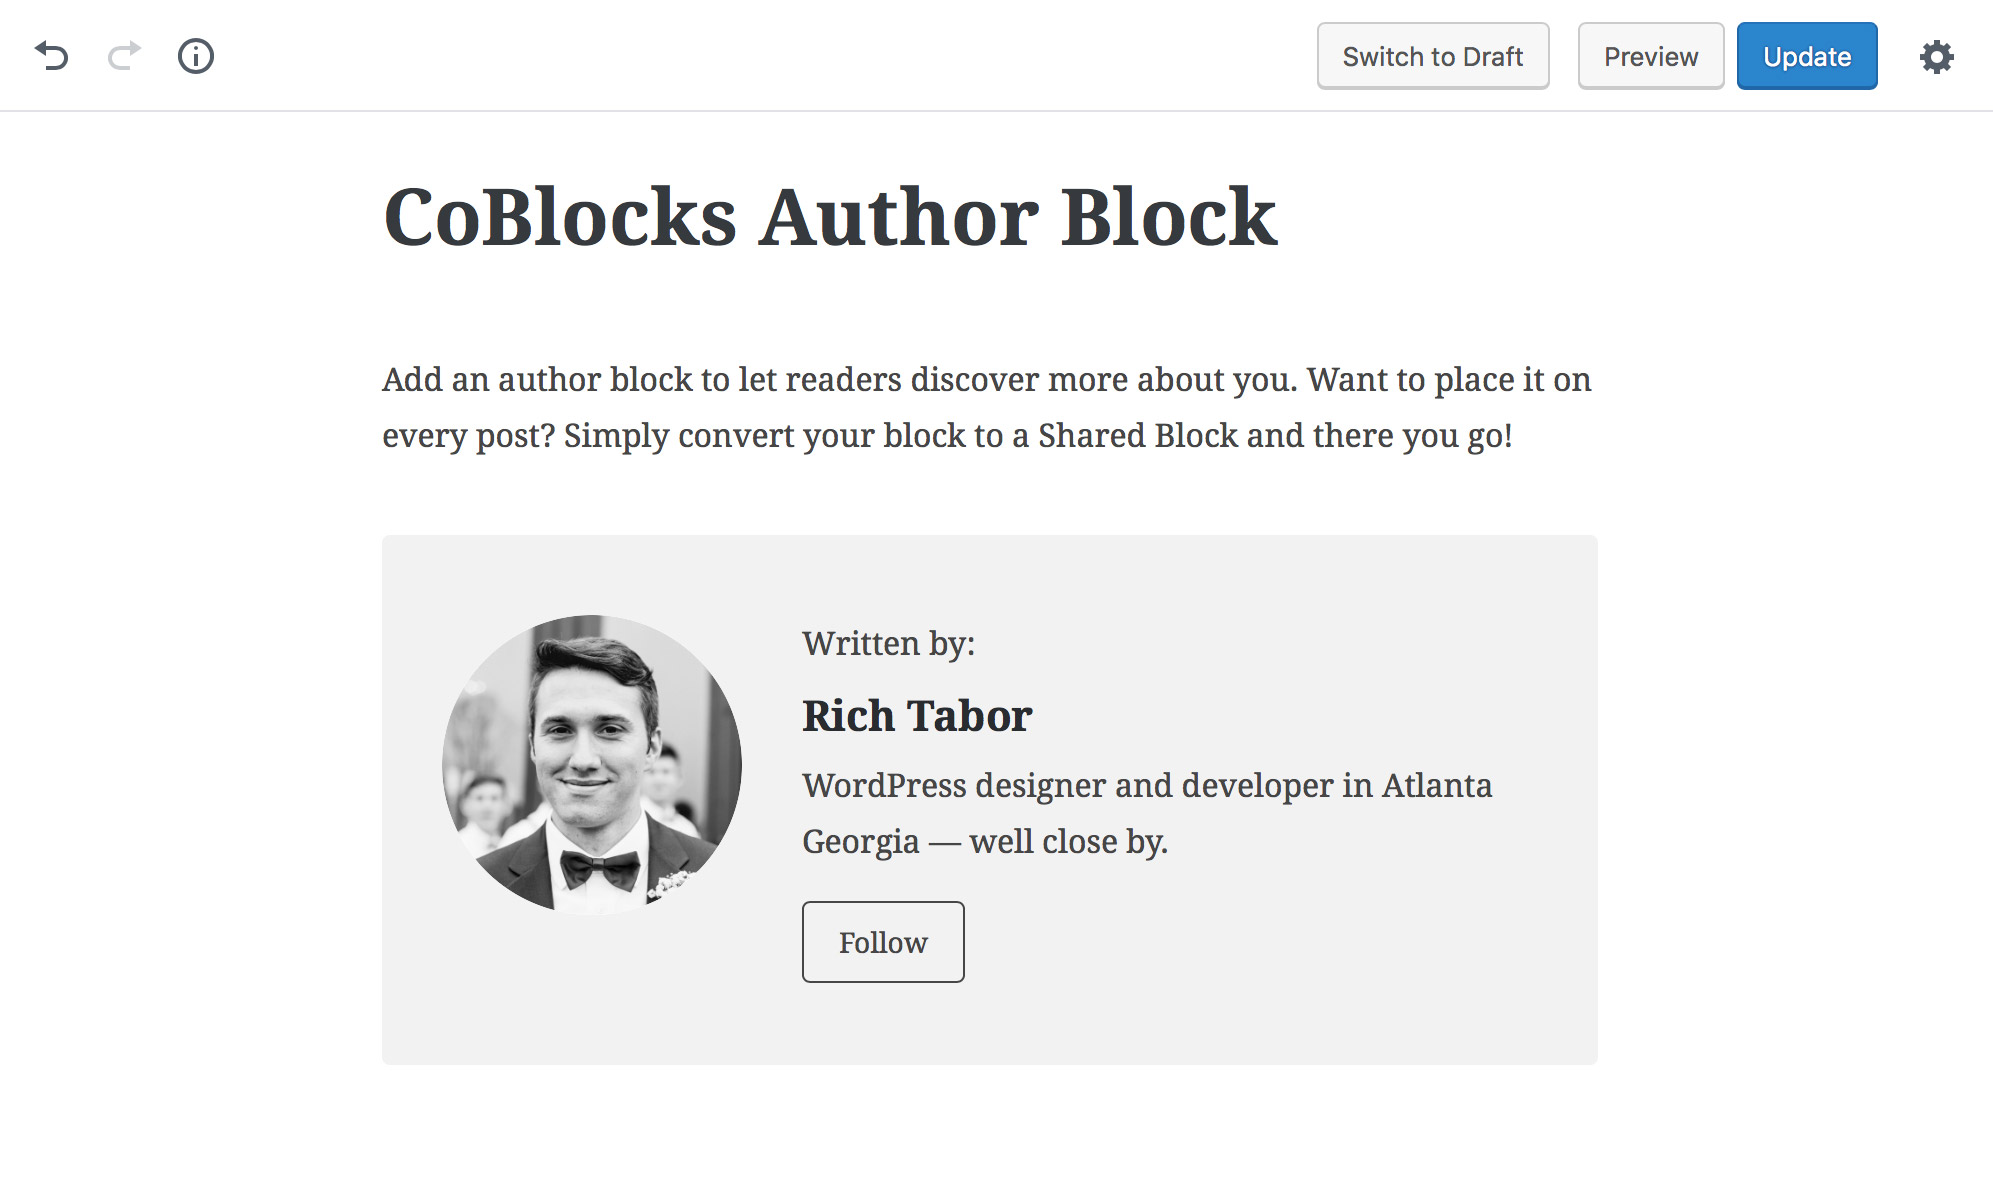 CoBlocks Author Block